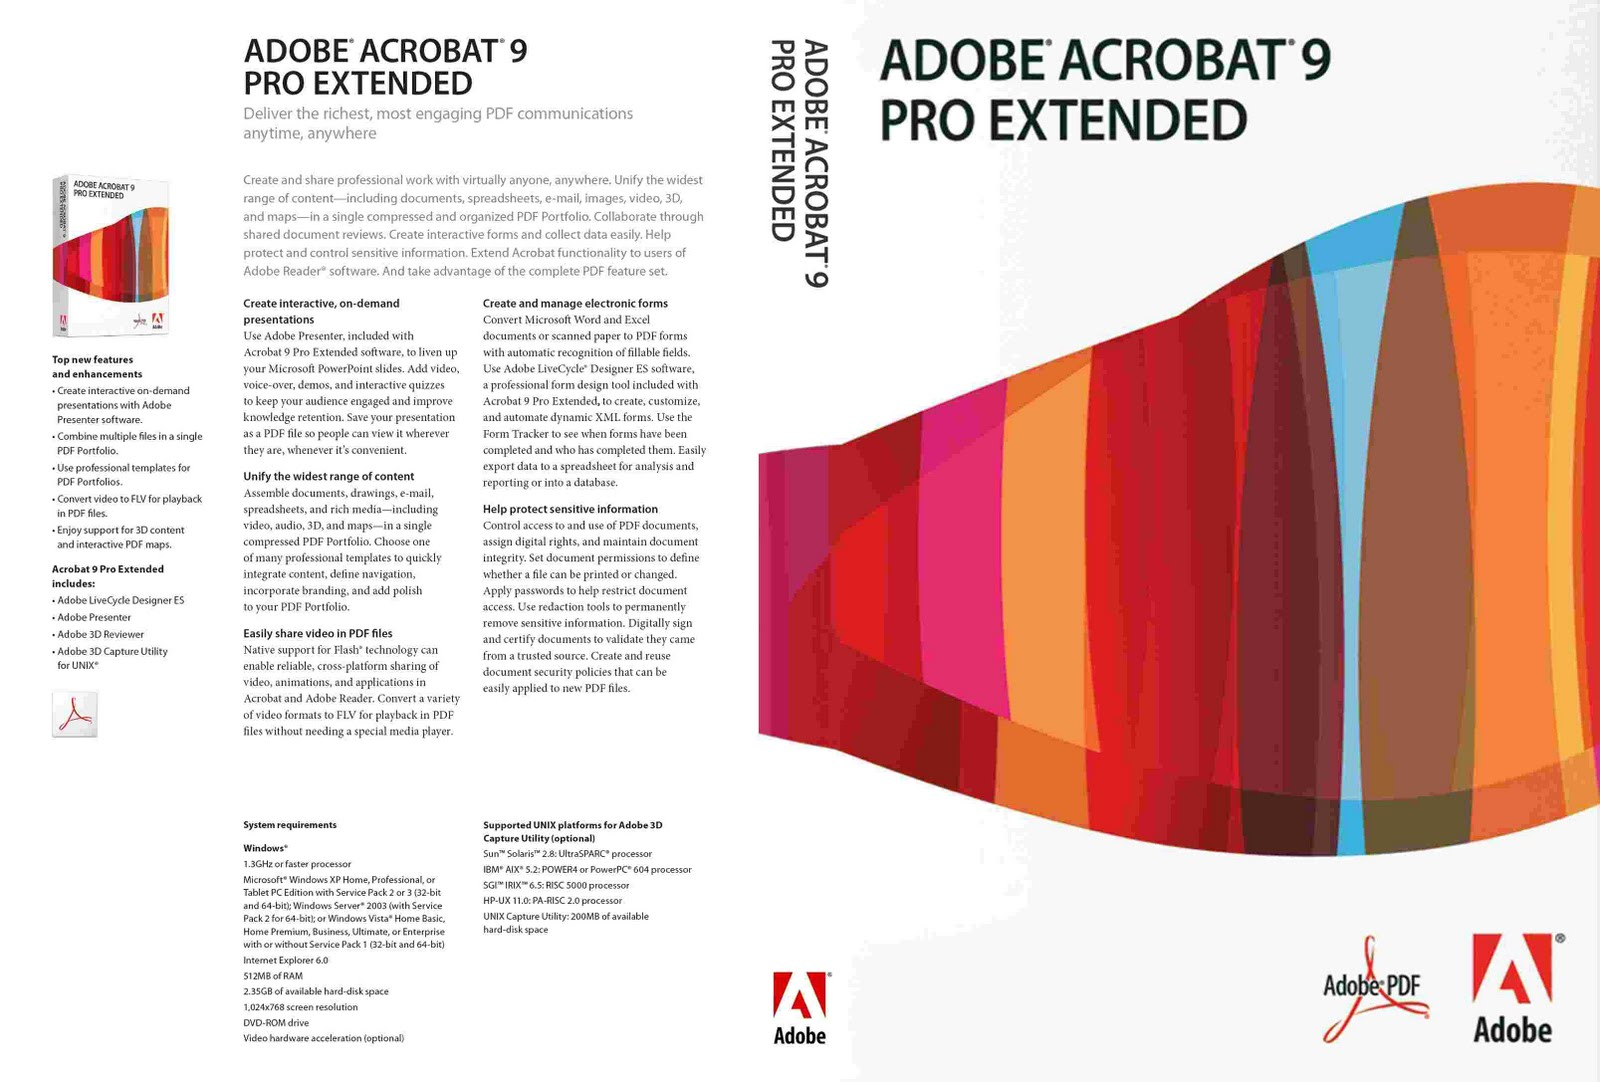 Adobe Acrobat Reader 9 Pro Extended System Requirements